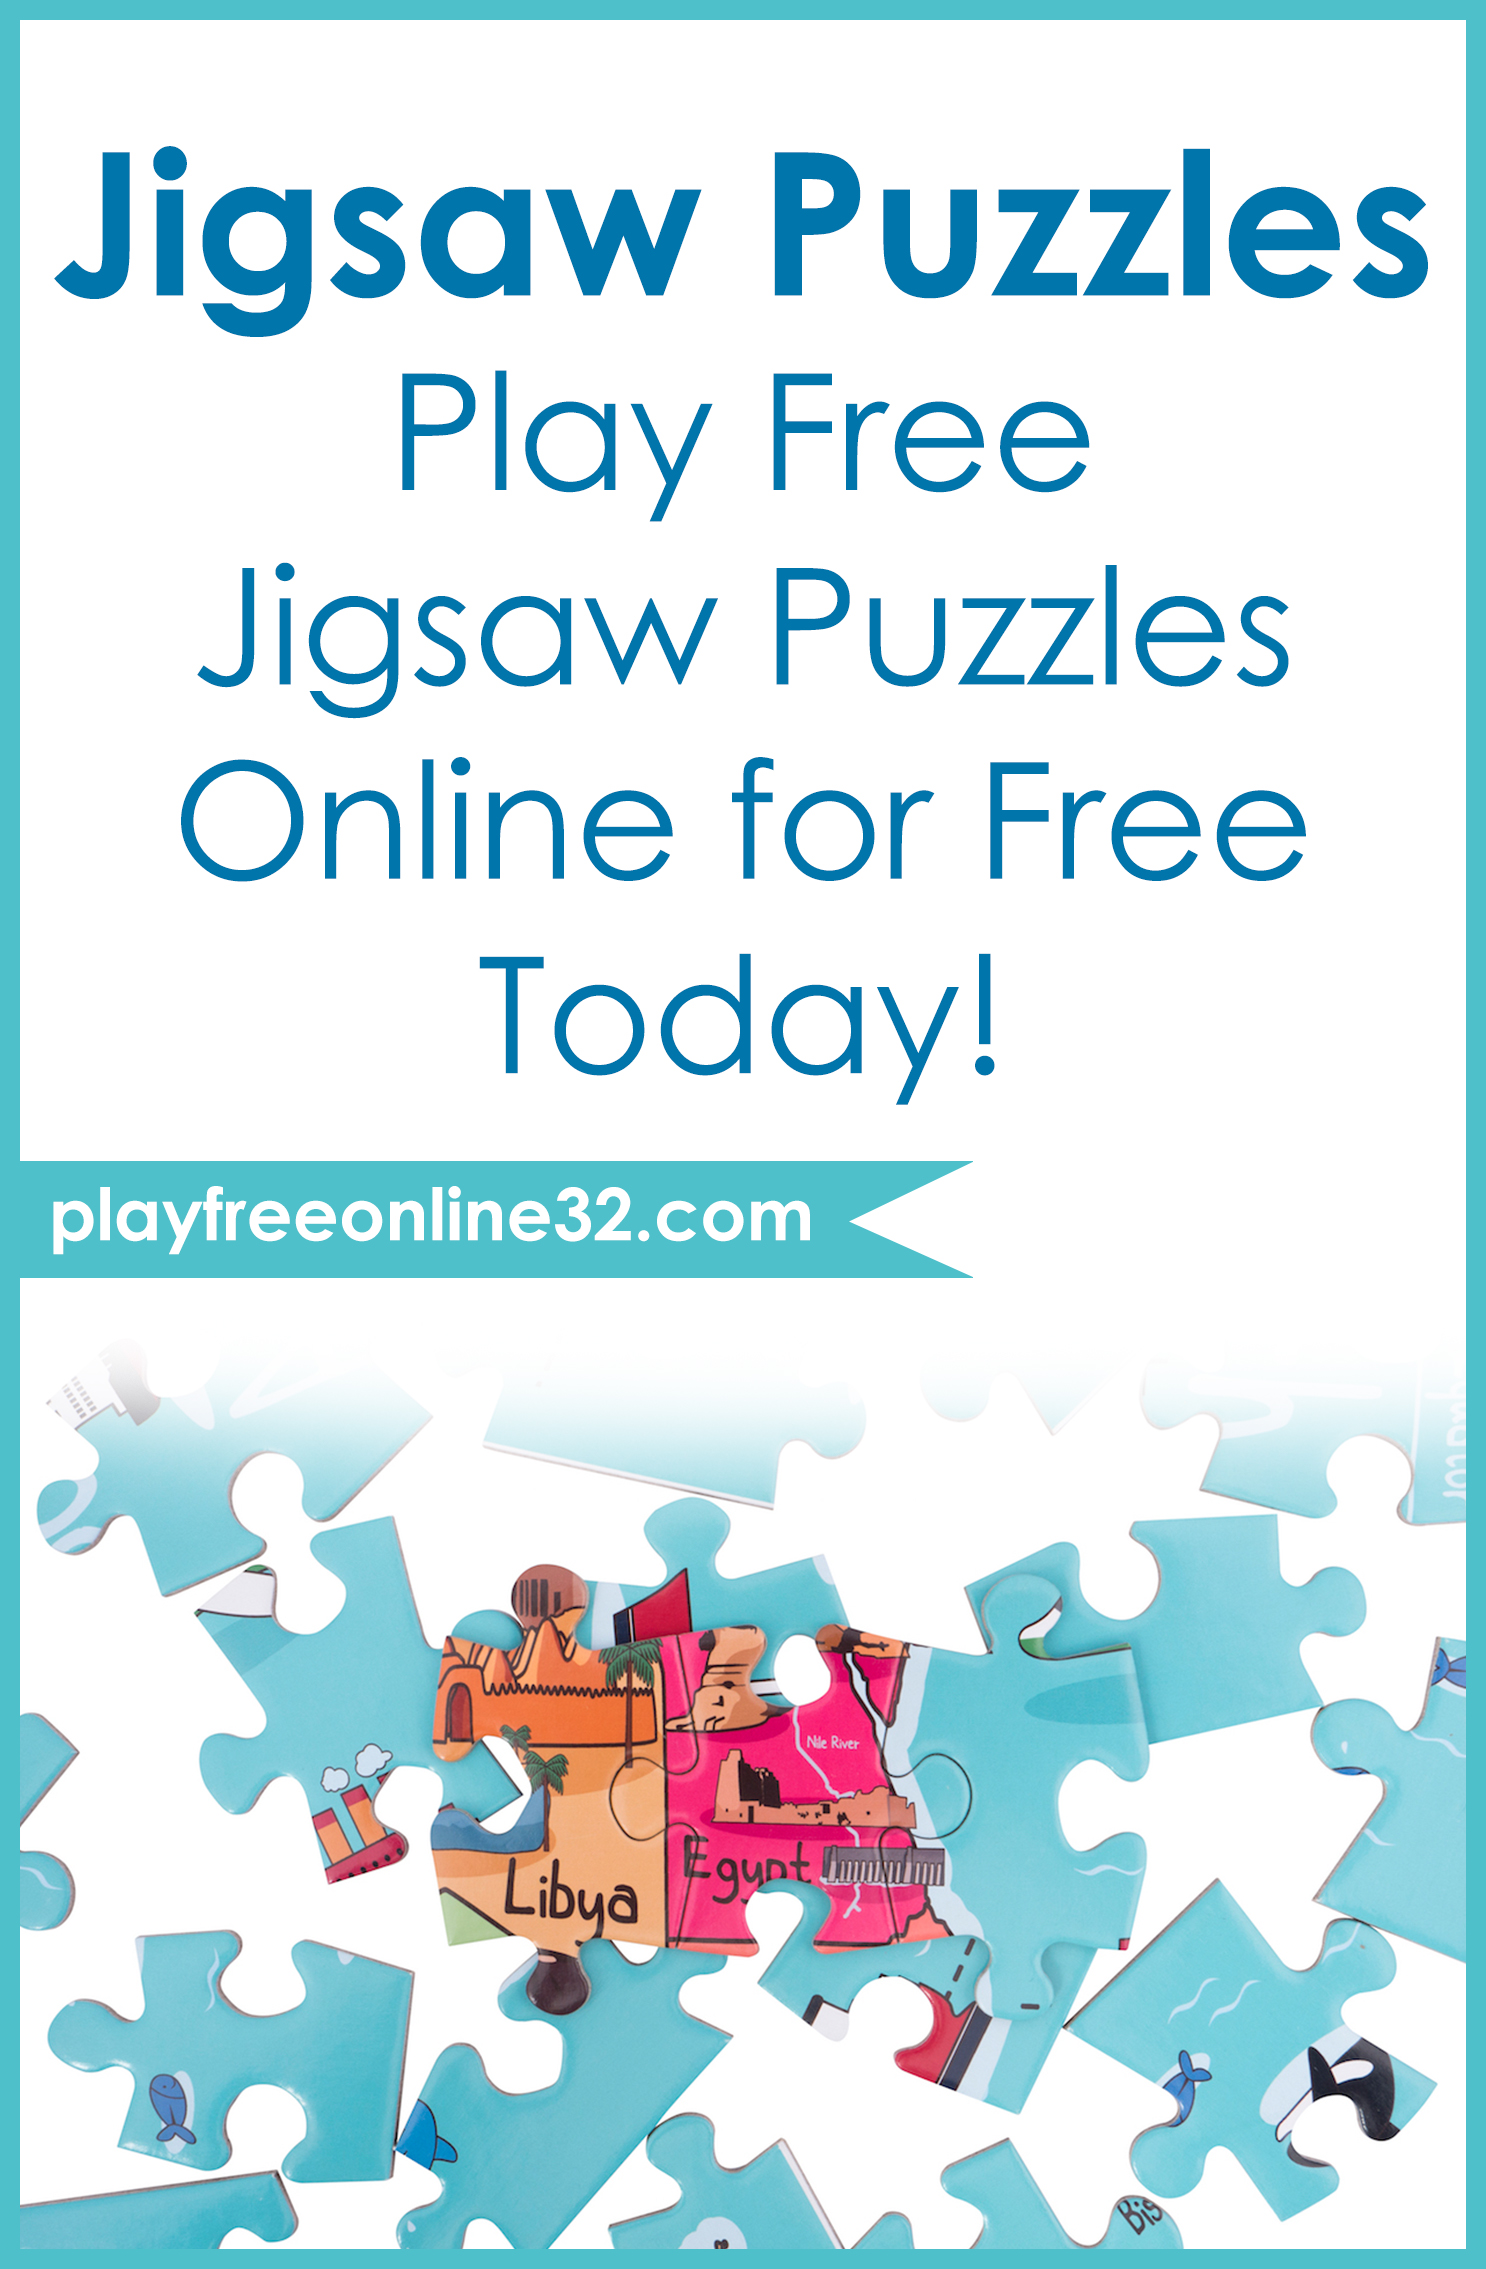 Jigsaw Puzzles Online • Play Free Jigsaw Puzzles Online for Free Today!